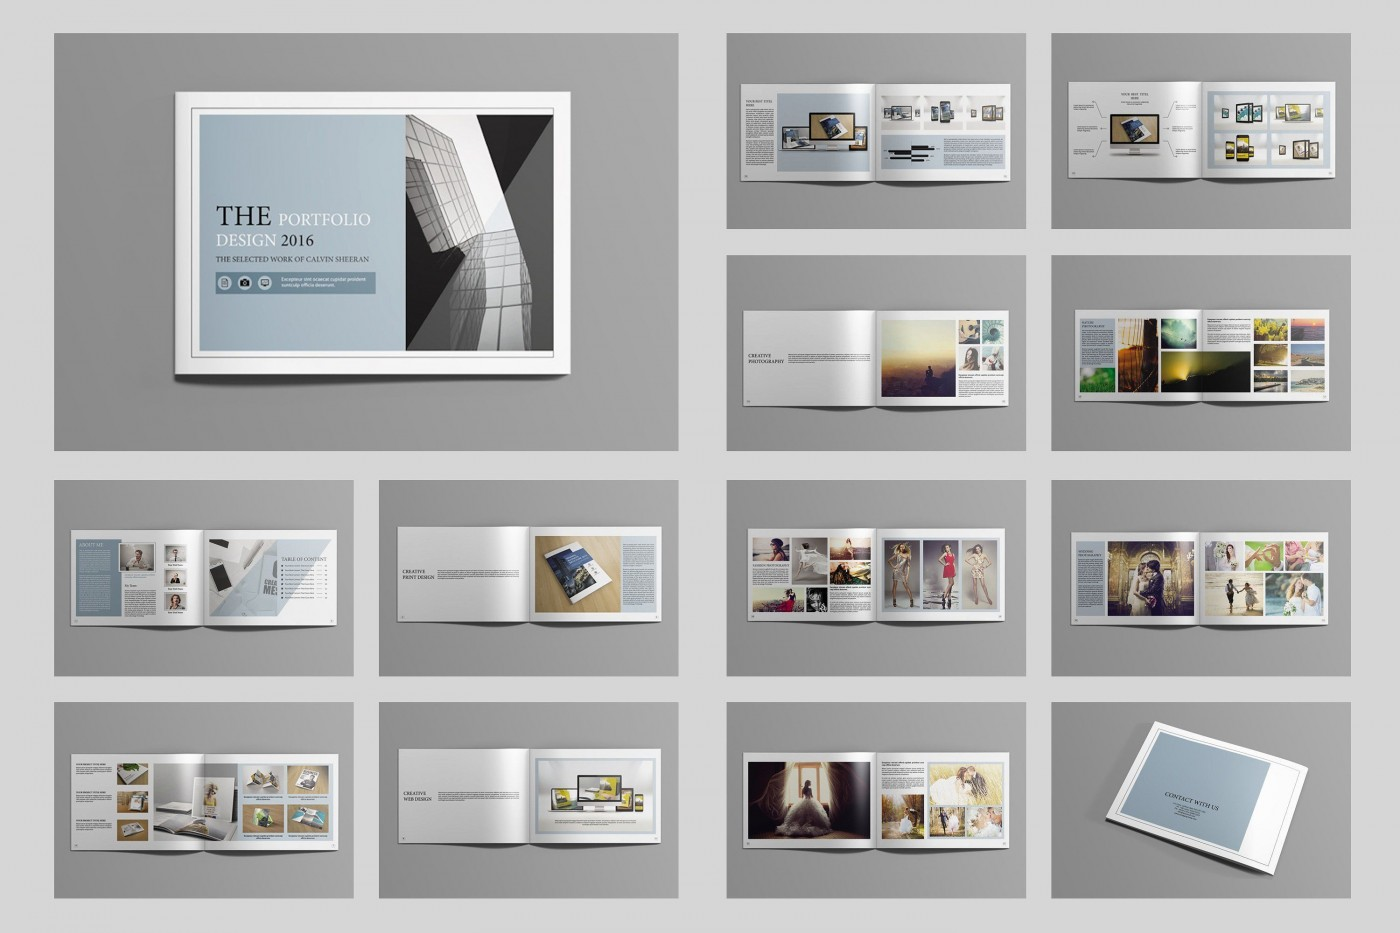 002 Stunning In Design Portfolio Template Inspiration  Free Indesign A3 Photography Graphic Download1400